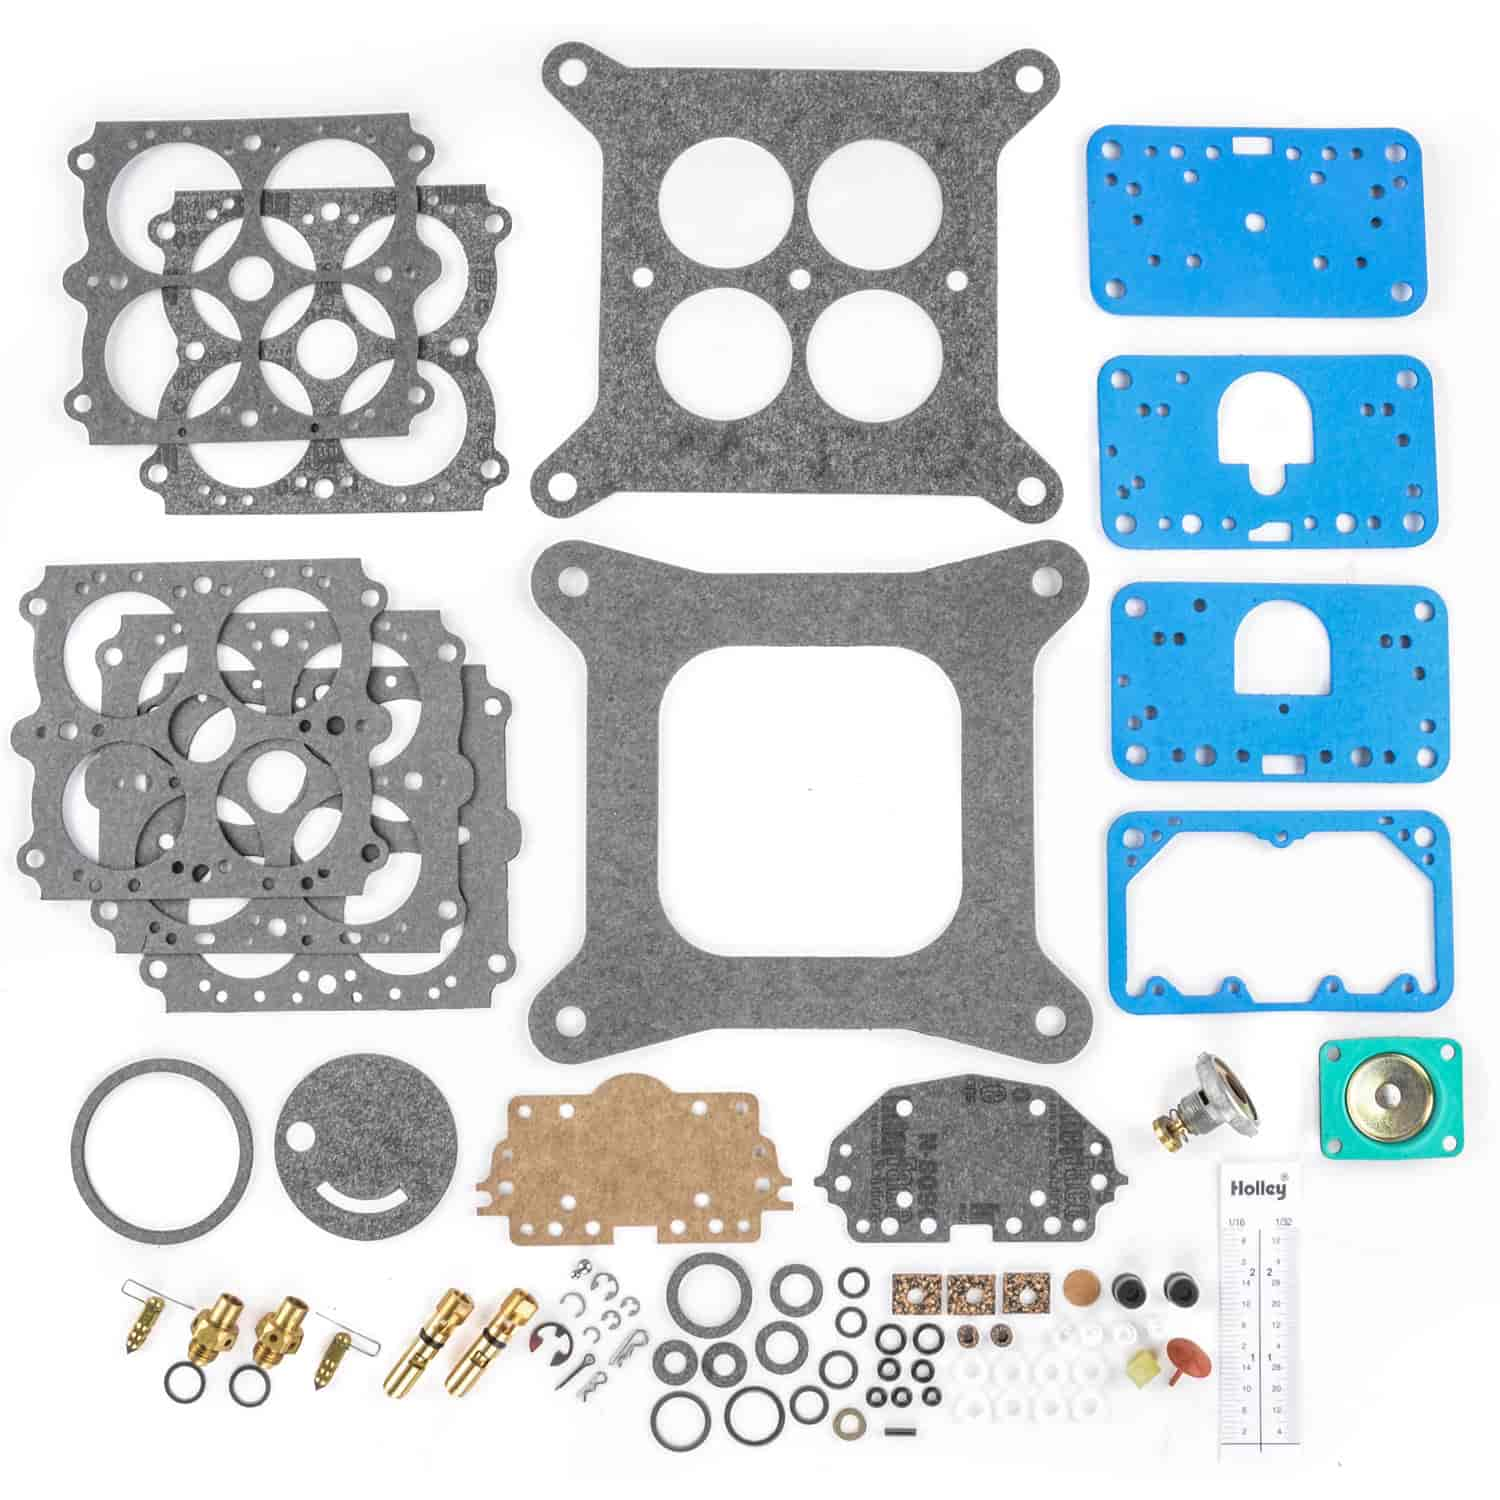 Holley 37-119 - Holley Carburetor Rebuild Kits